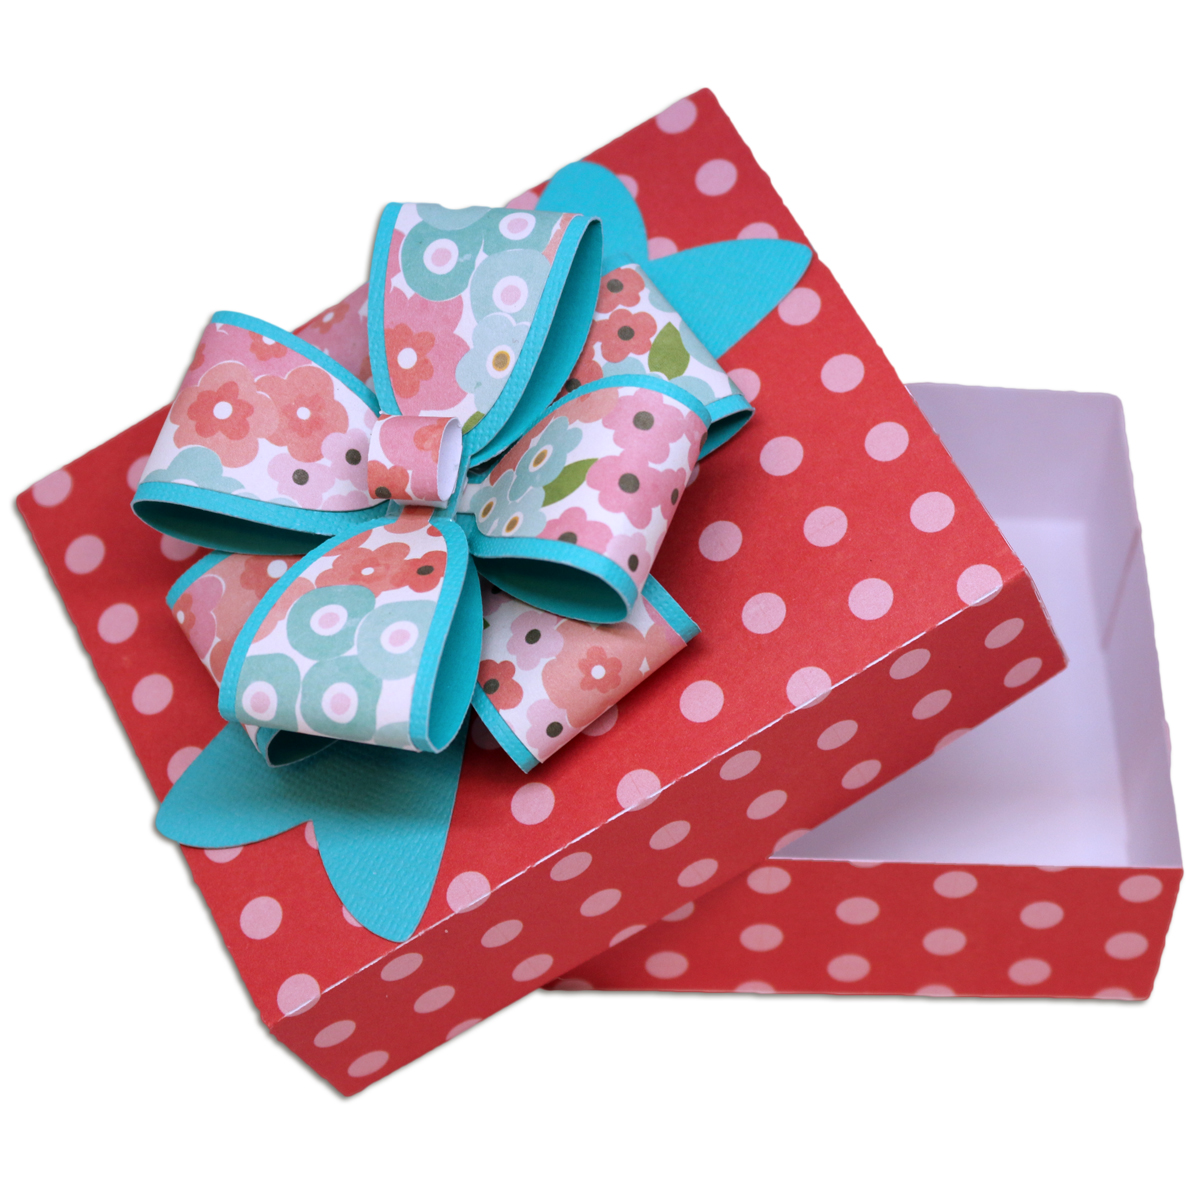 Bits of paper gift box with bow